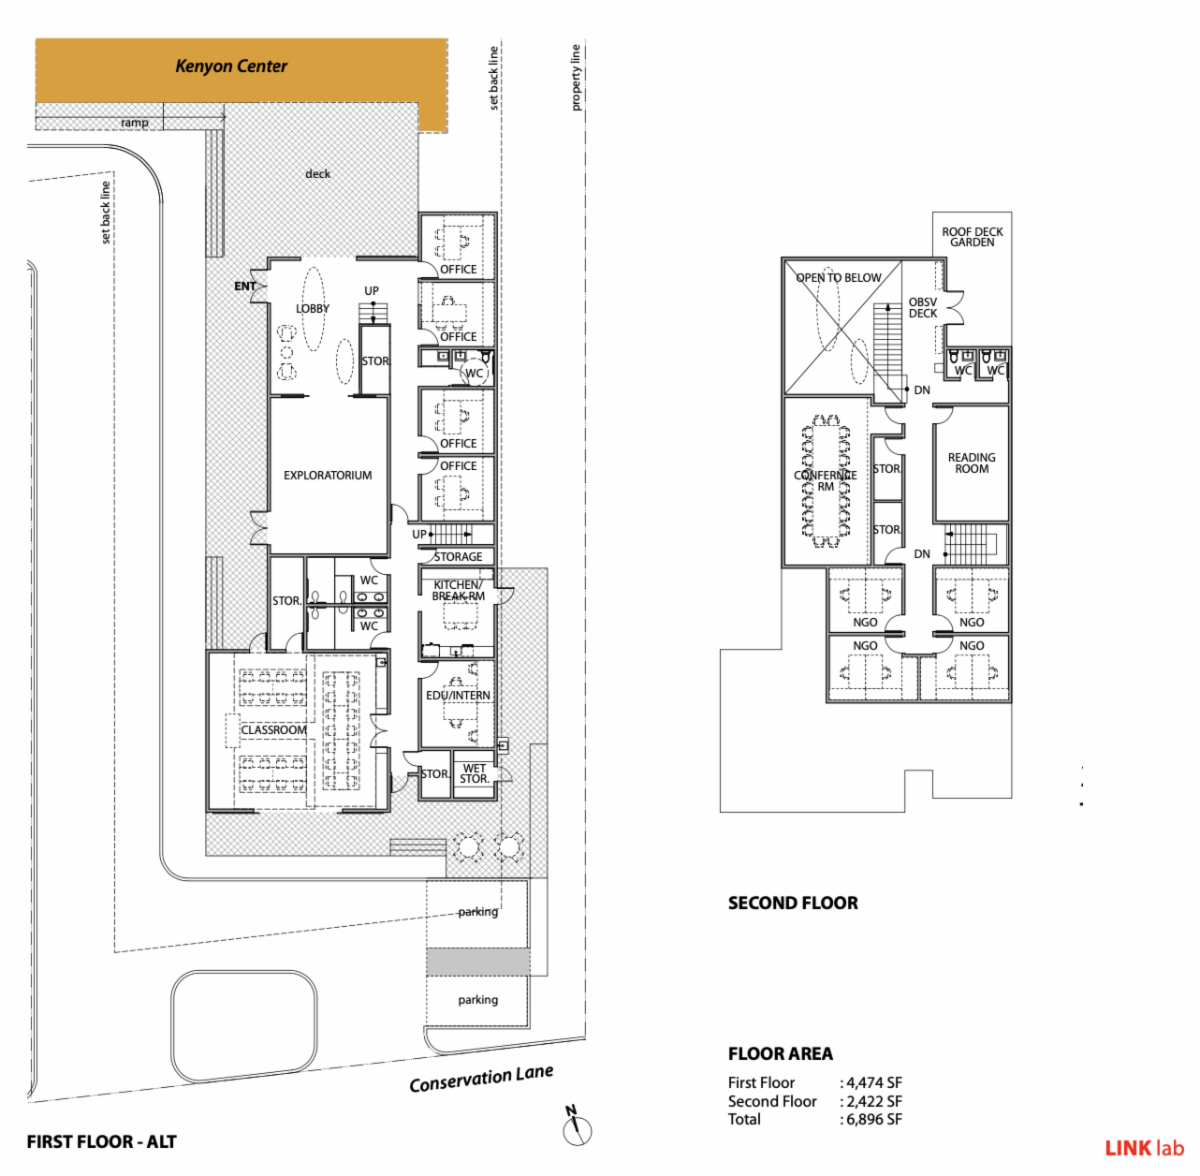 Draft Learning Centre plans